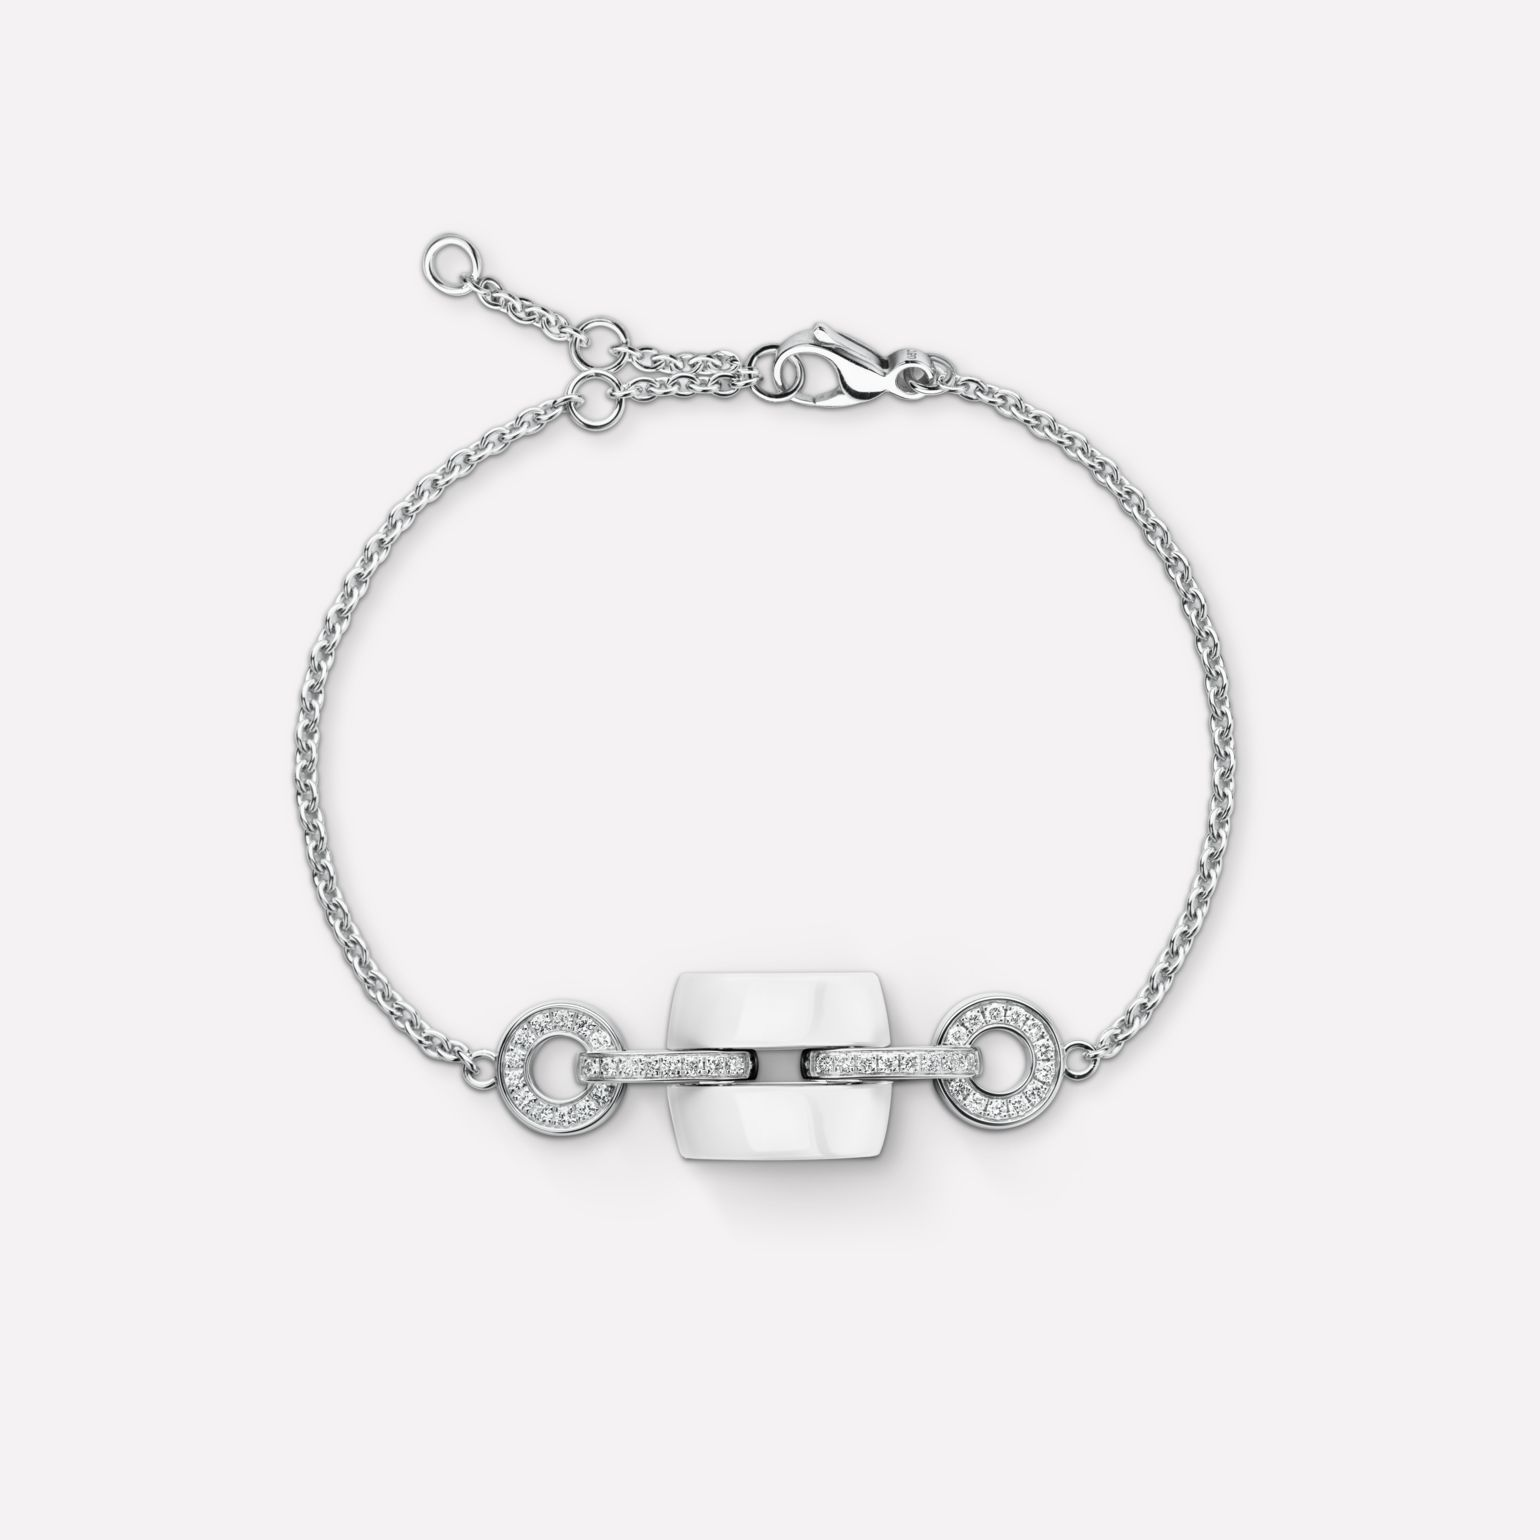 Ultra Bracelet Ultra bracelet in white ceramic, 18K white gold and diamonds